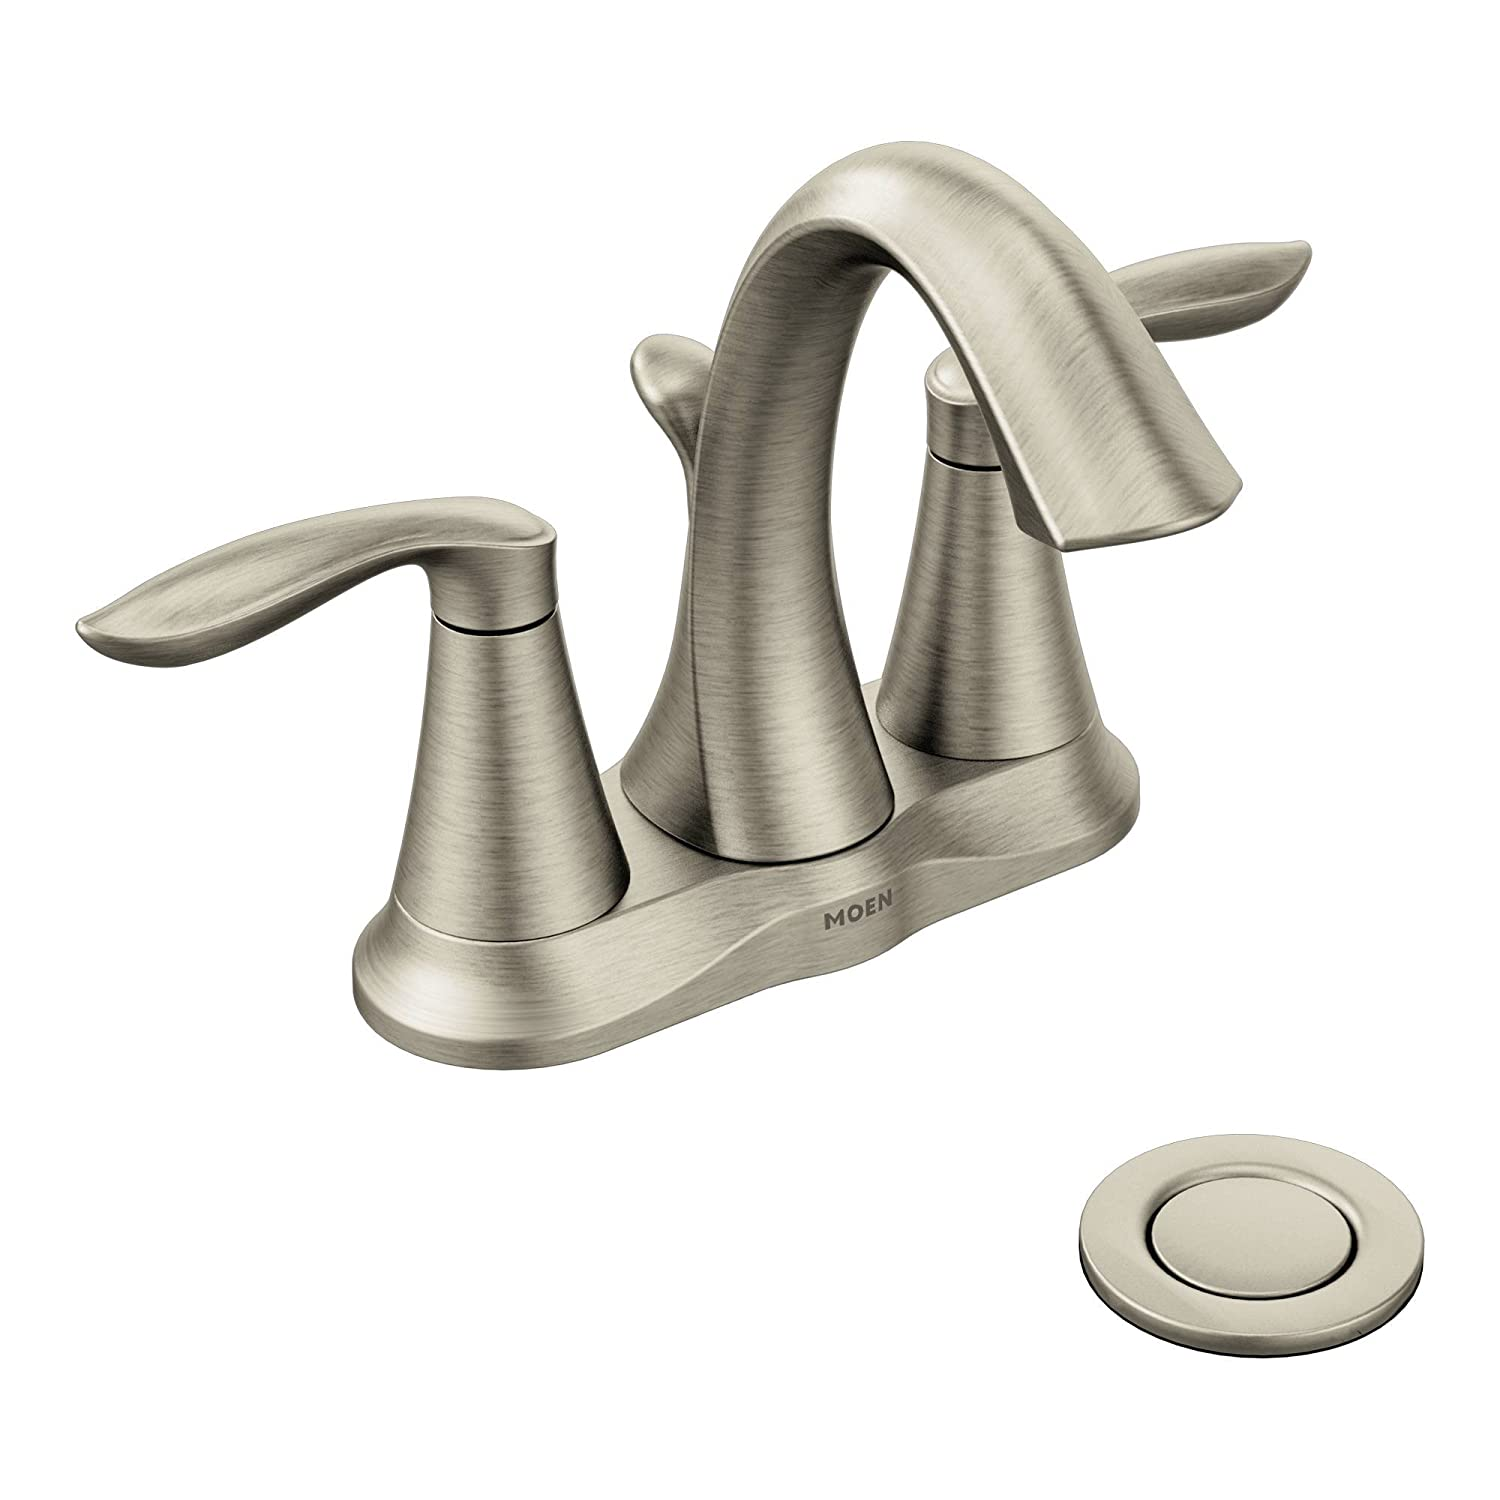 Amazon.com: Moen Eva Two-Handle Centerset Bathroom Faucet with Drain ...